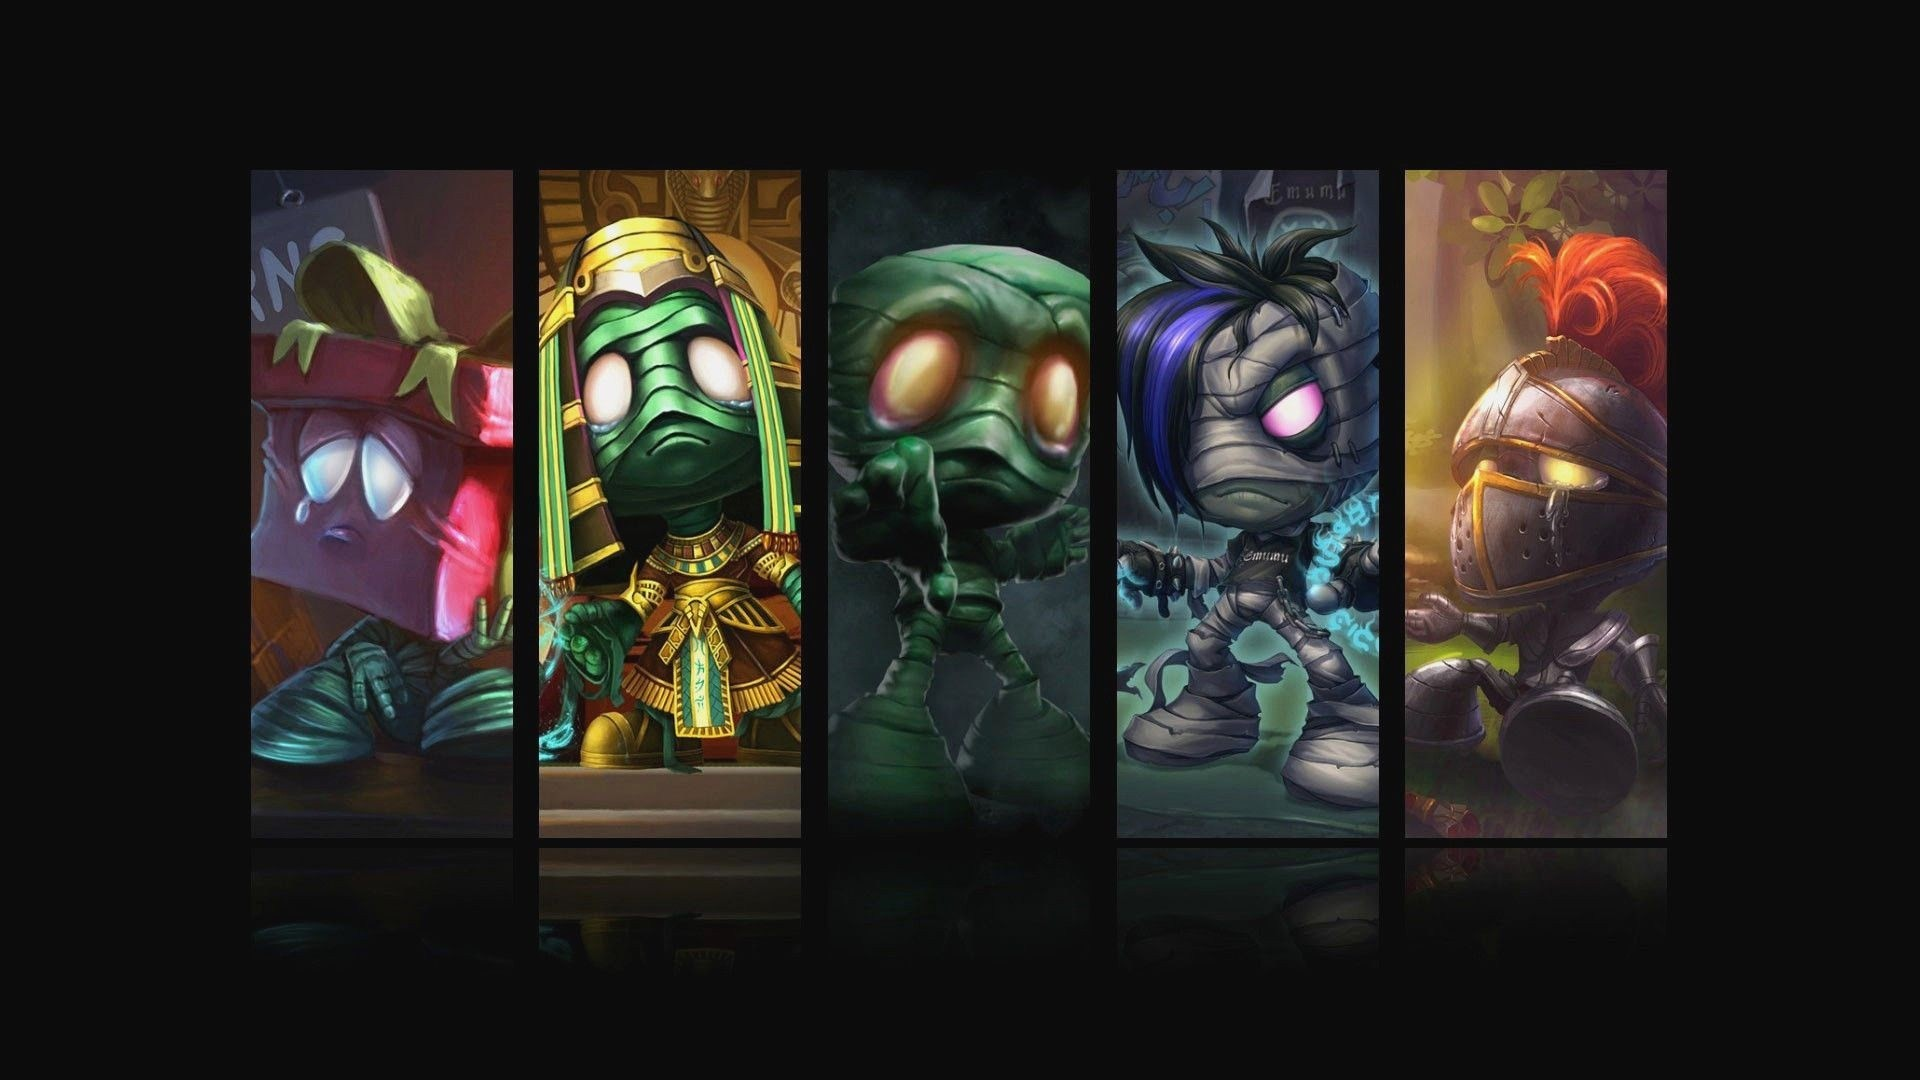 Mobile Legends Heroes Wallpaper Hd Awesome Lol Wallpaper Beautiful Amumu All Skin League Legends 0d Unique